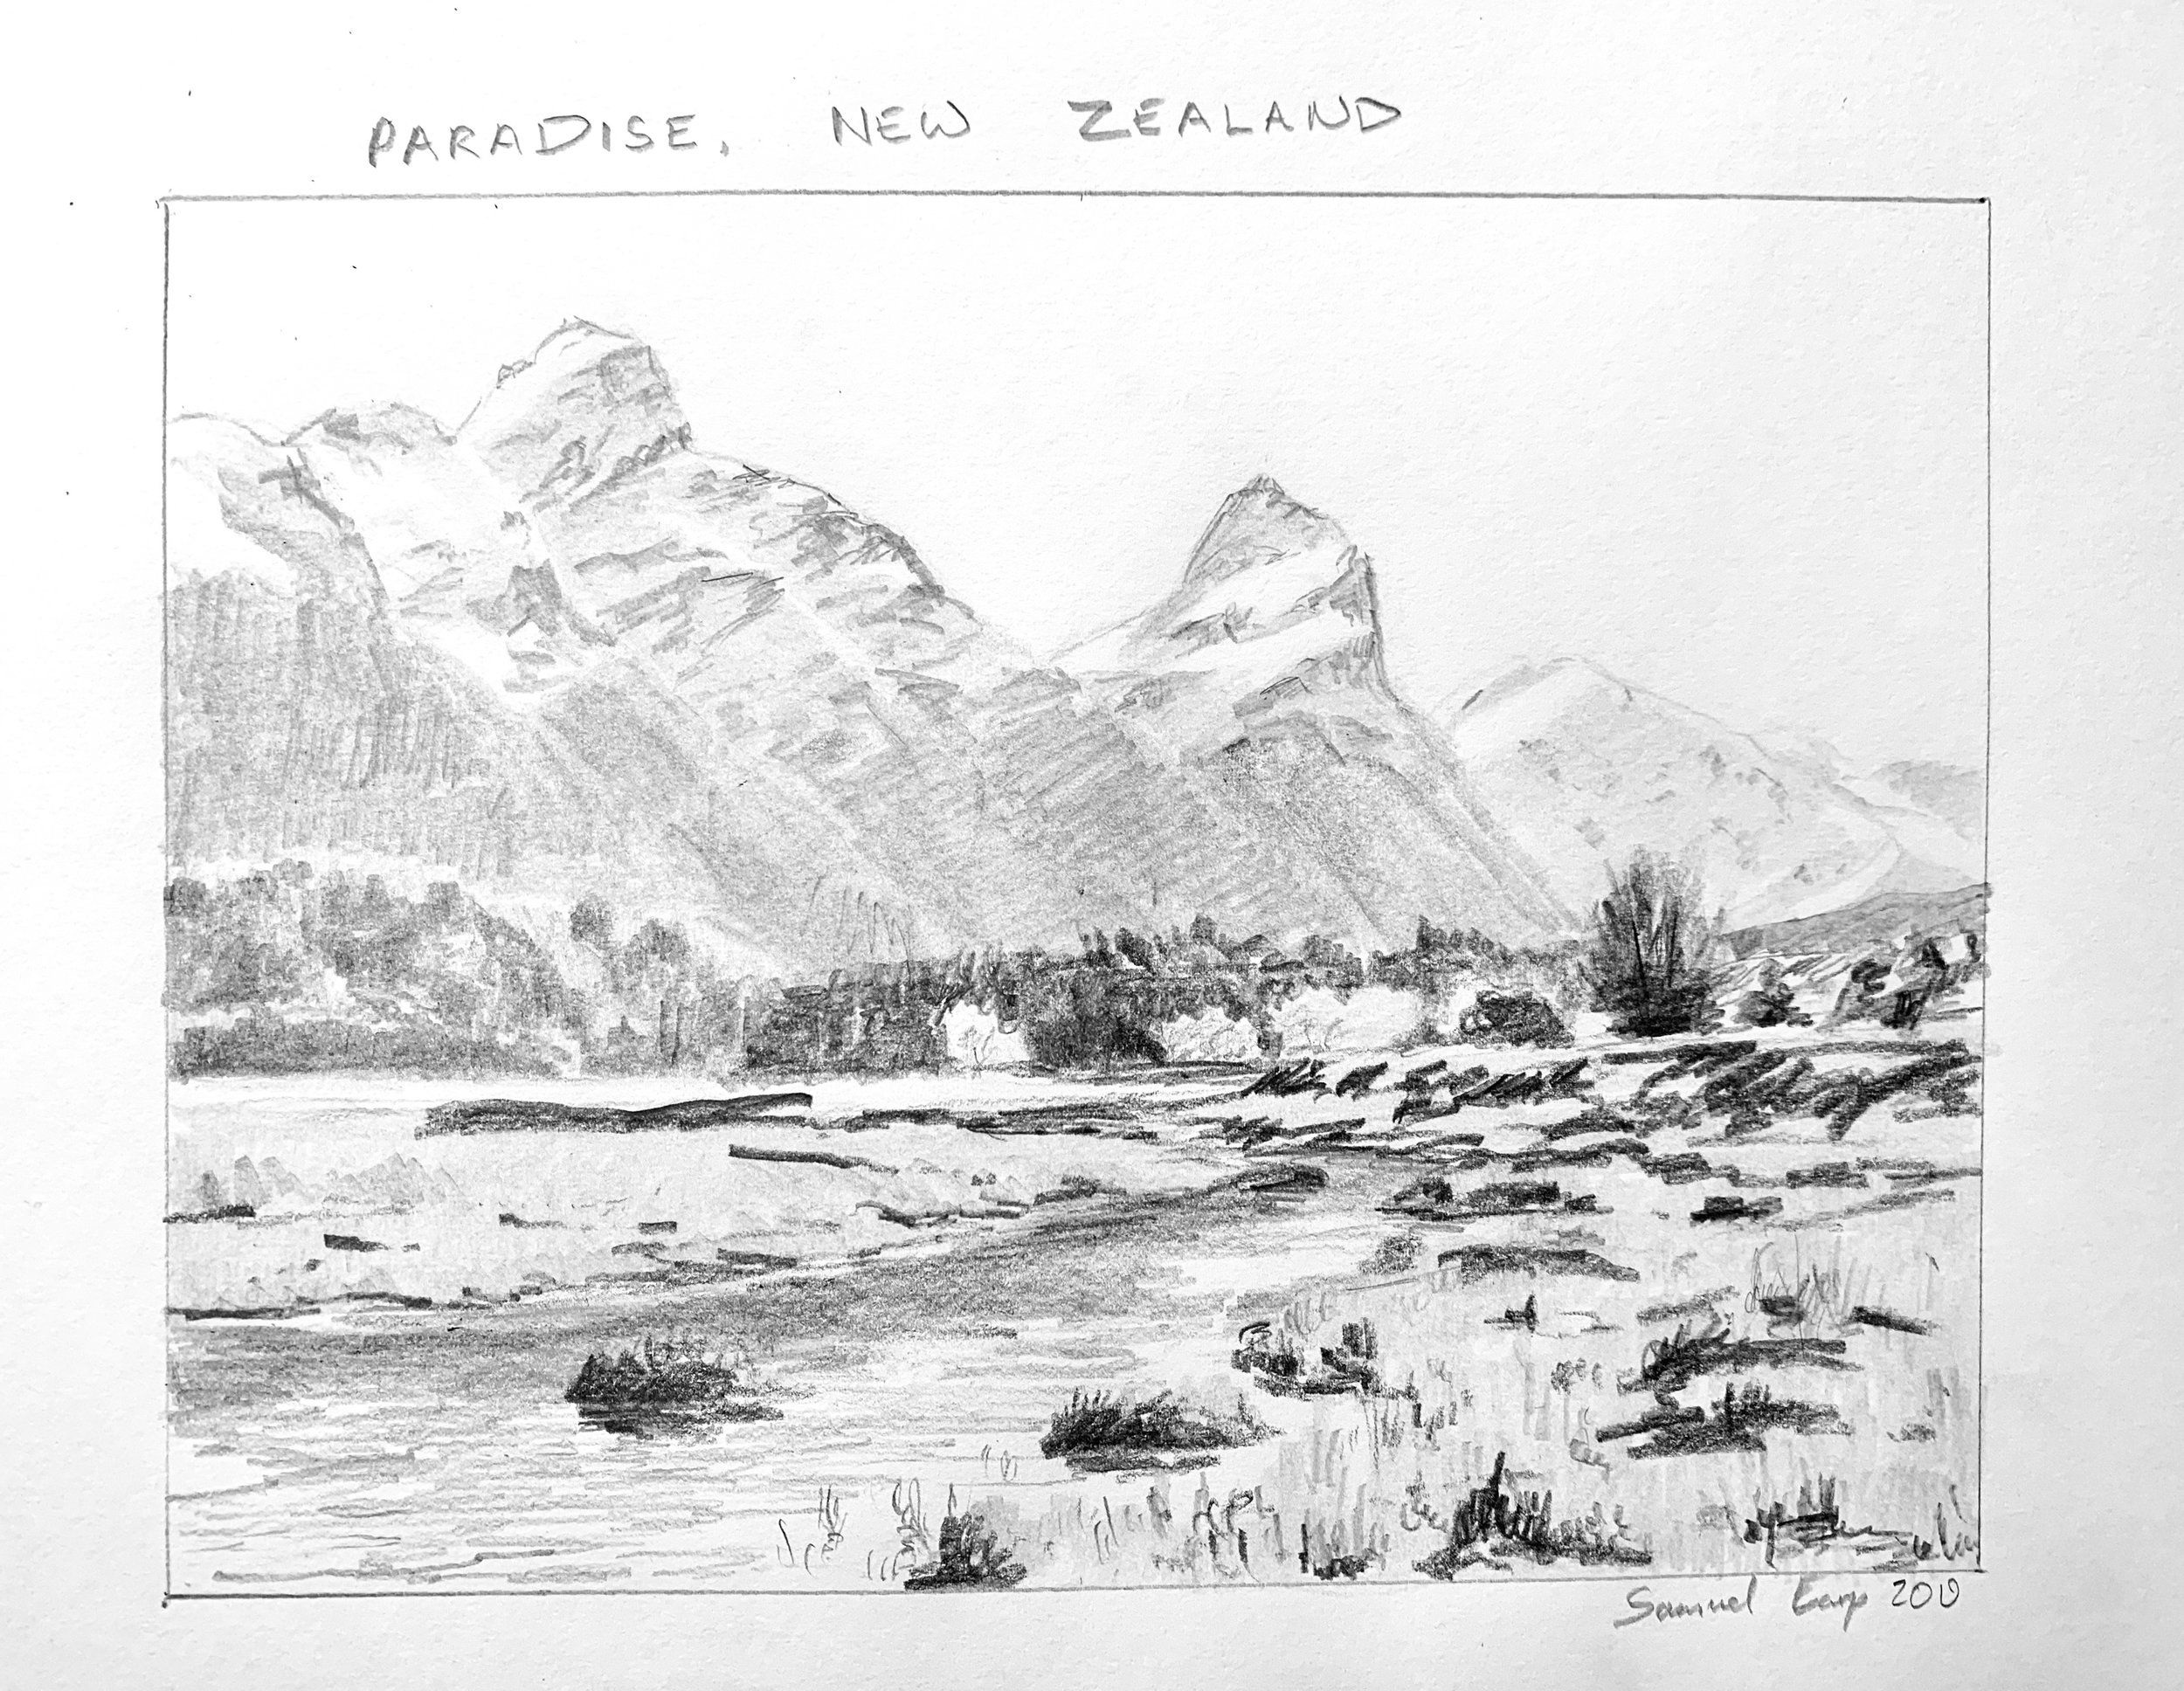 Paradise New Zealand - pencil drawing - Samuel Earp Artist.jpeg